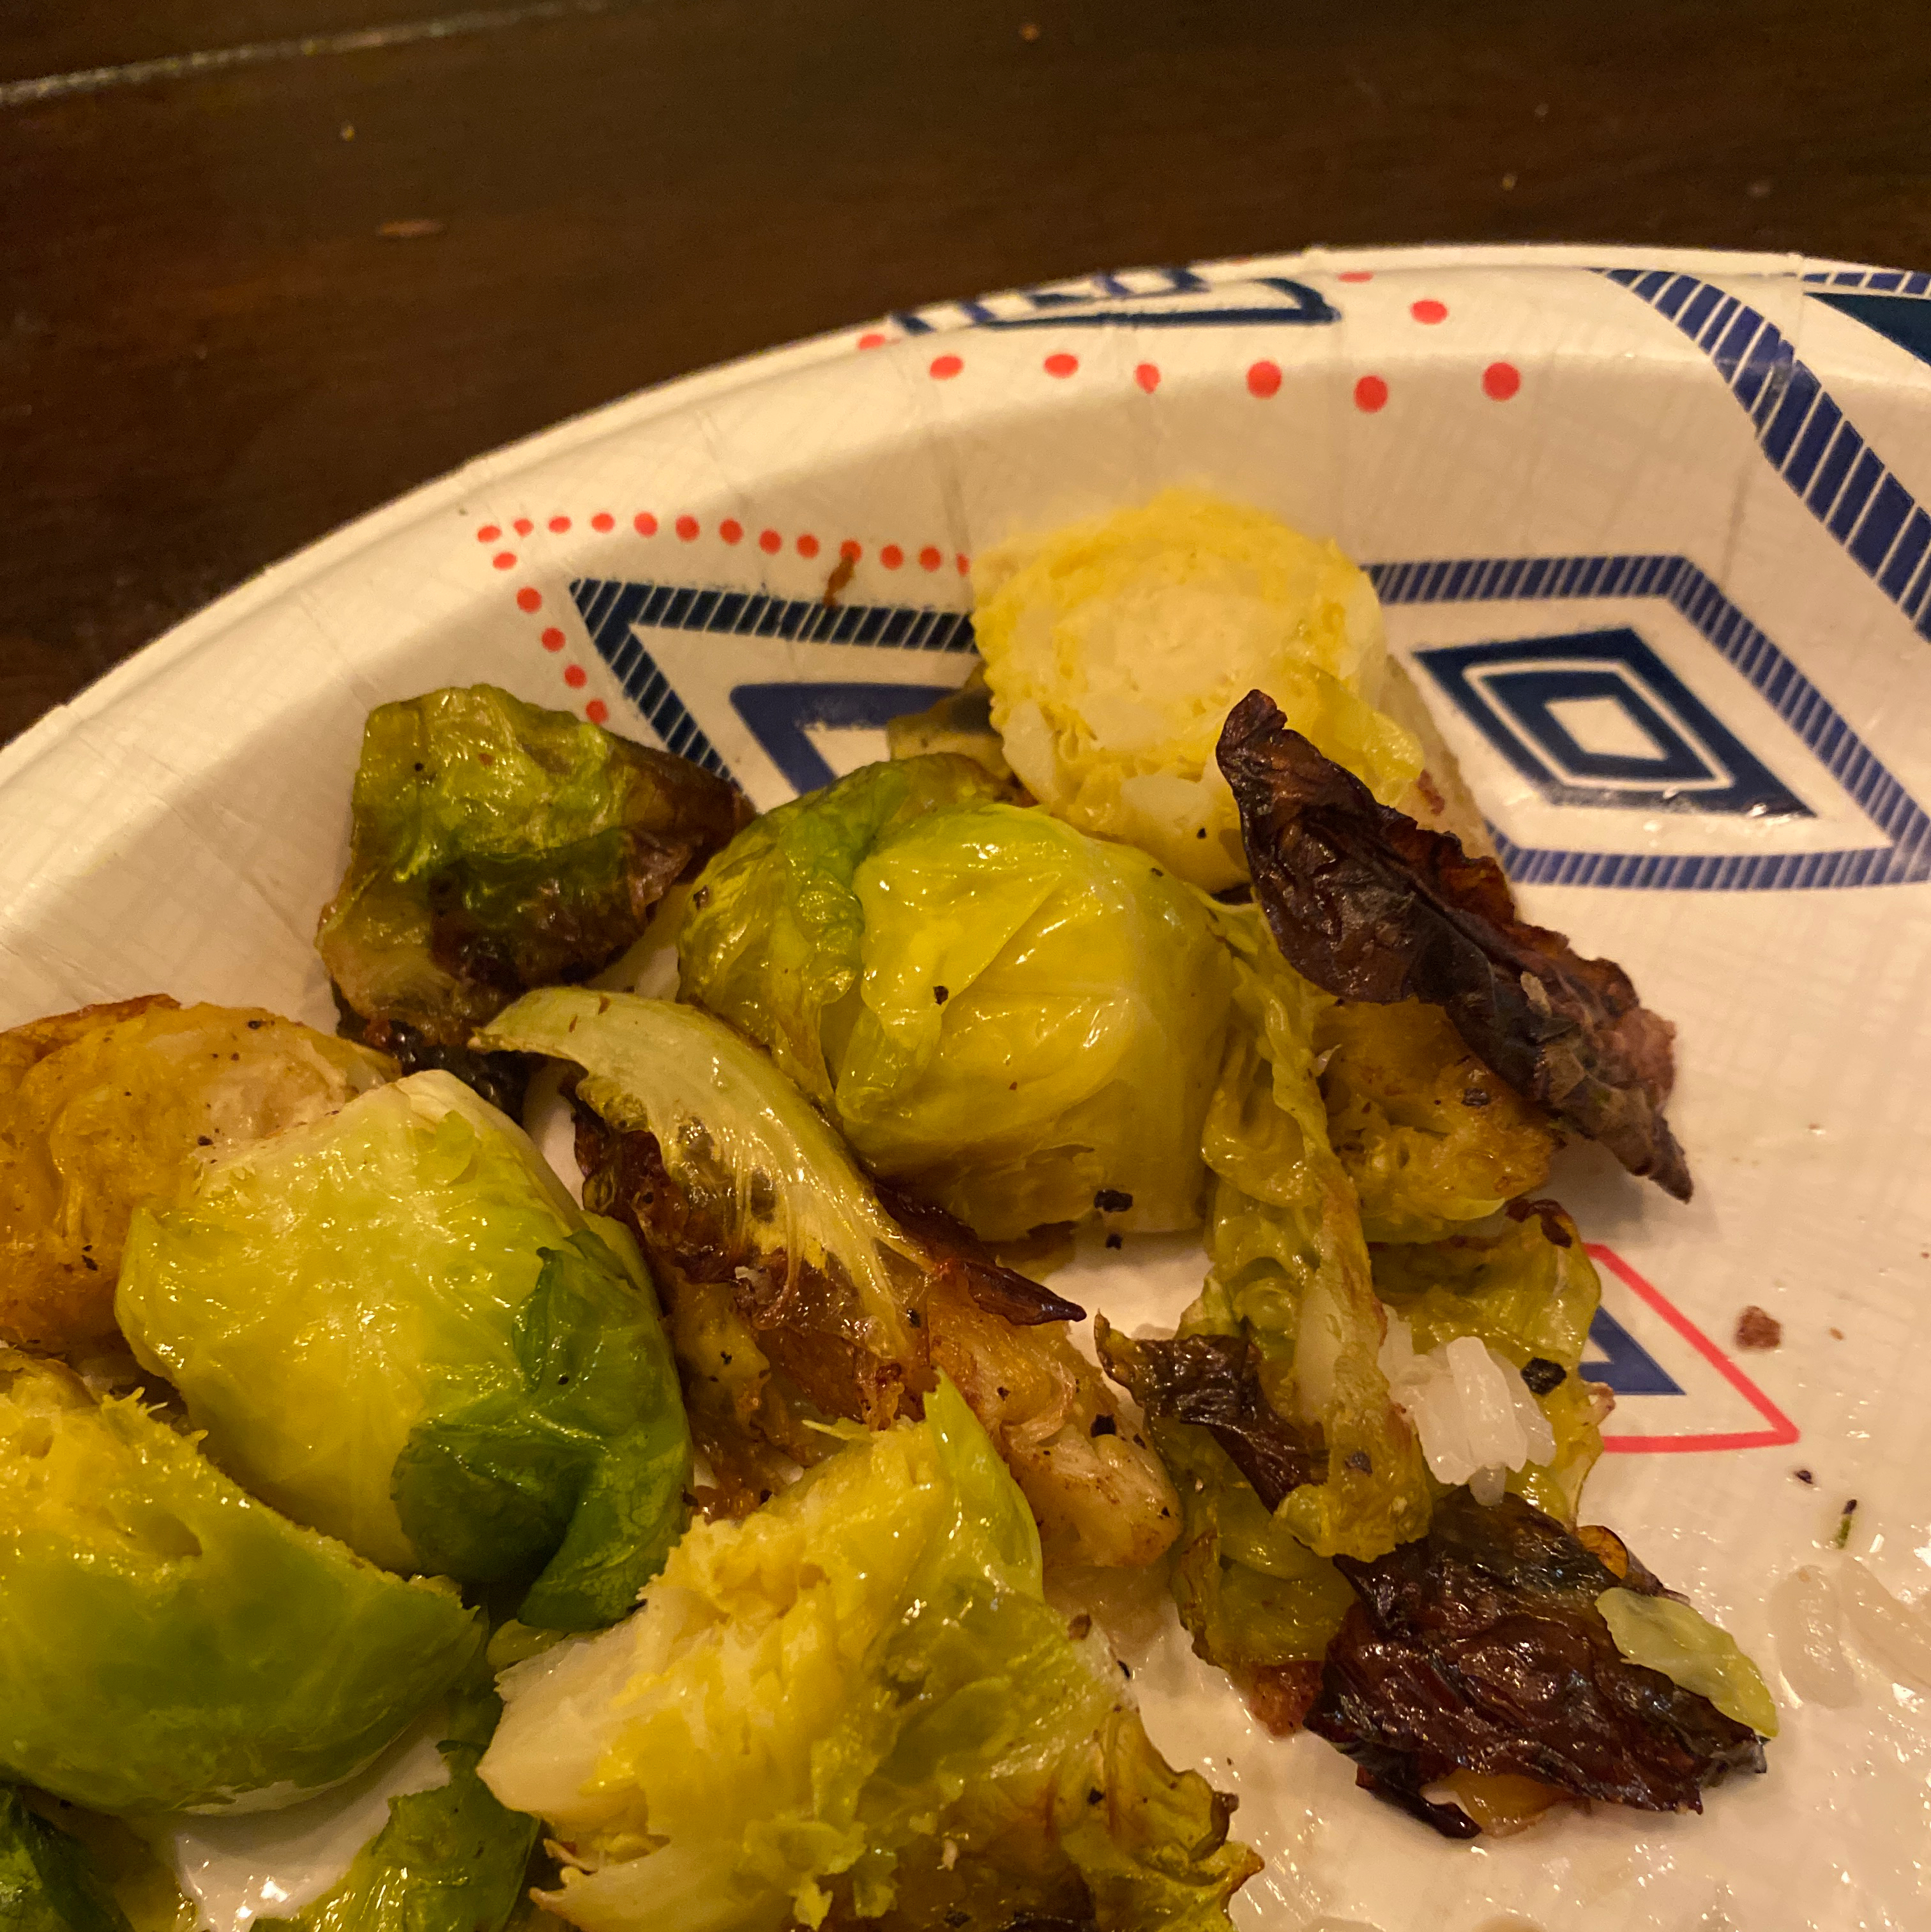 Roasted Brussels Sprouts Haley Fairbanks